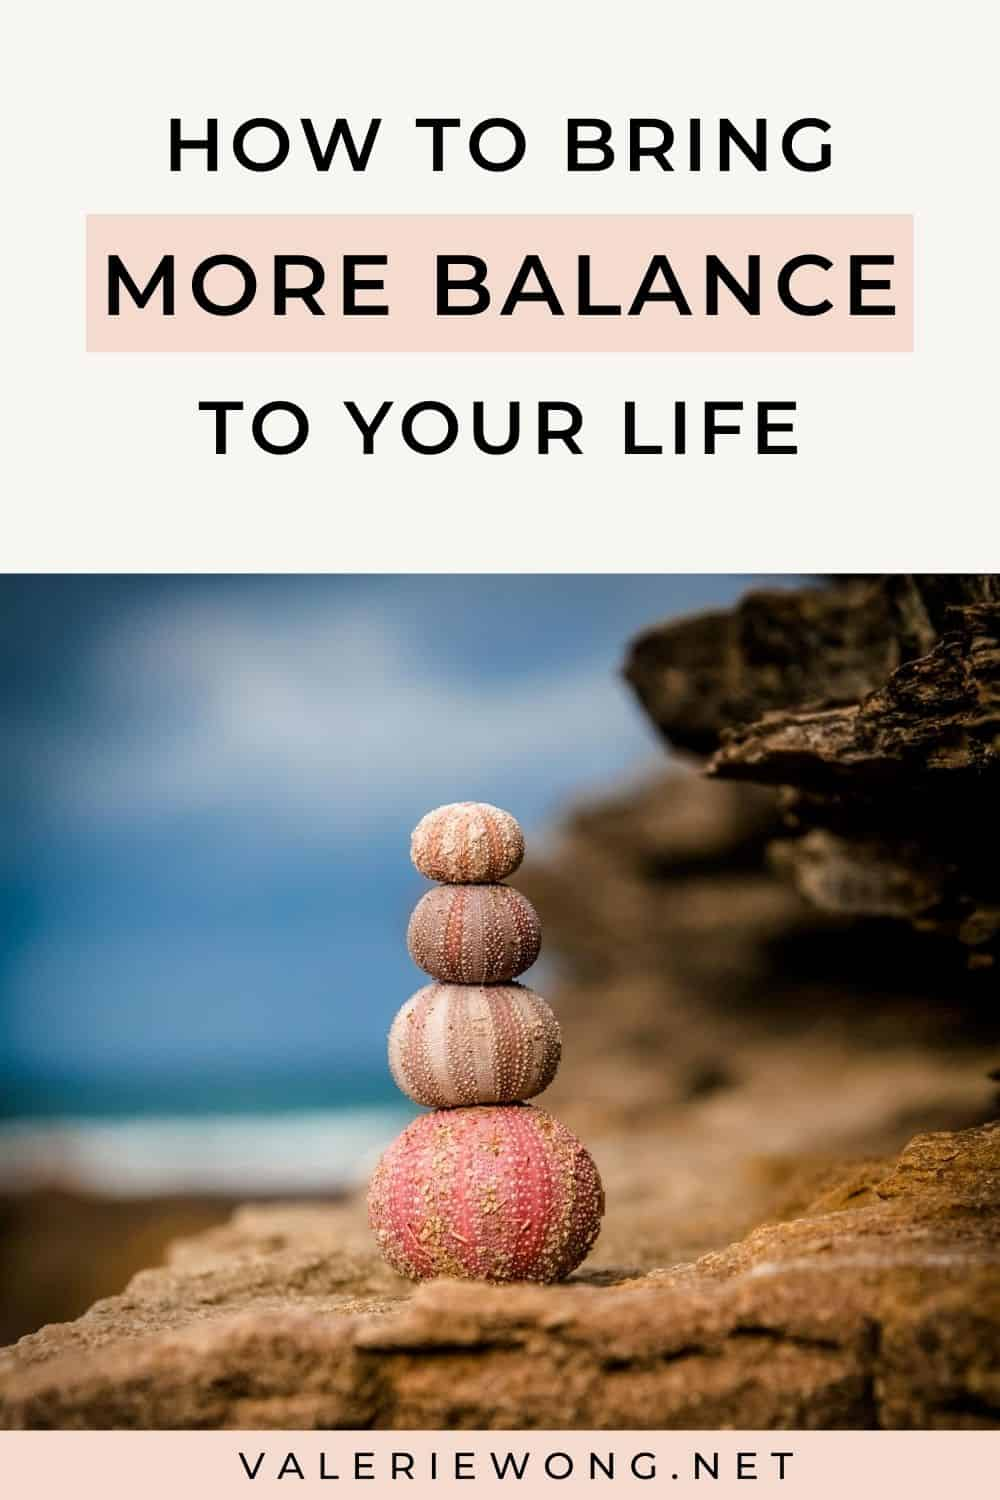 How to Live a More Balanced Life | Do you struggle with work-life balance? Or maybe you wonder if there's even such a thing as life balance? In this post, I'm sharing my thoughts on whether life balance is a myth, and a different way of looking at what it actually means to live a balanced life. There's also a free printable Wheel of Life worksheet you can download that will help you get a clearer picture of how much time and energy you're giving to each area of your life. | ValerieWong.net via @valeriewonglifecoach